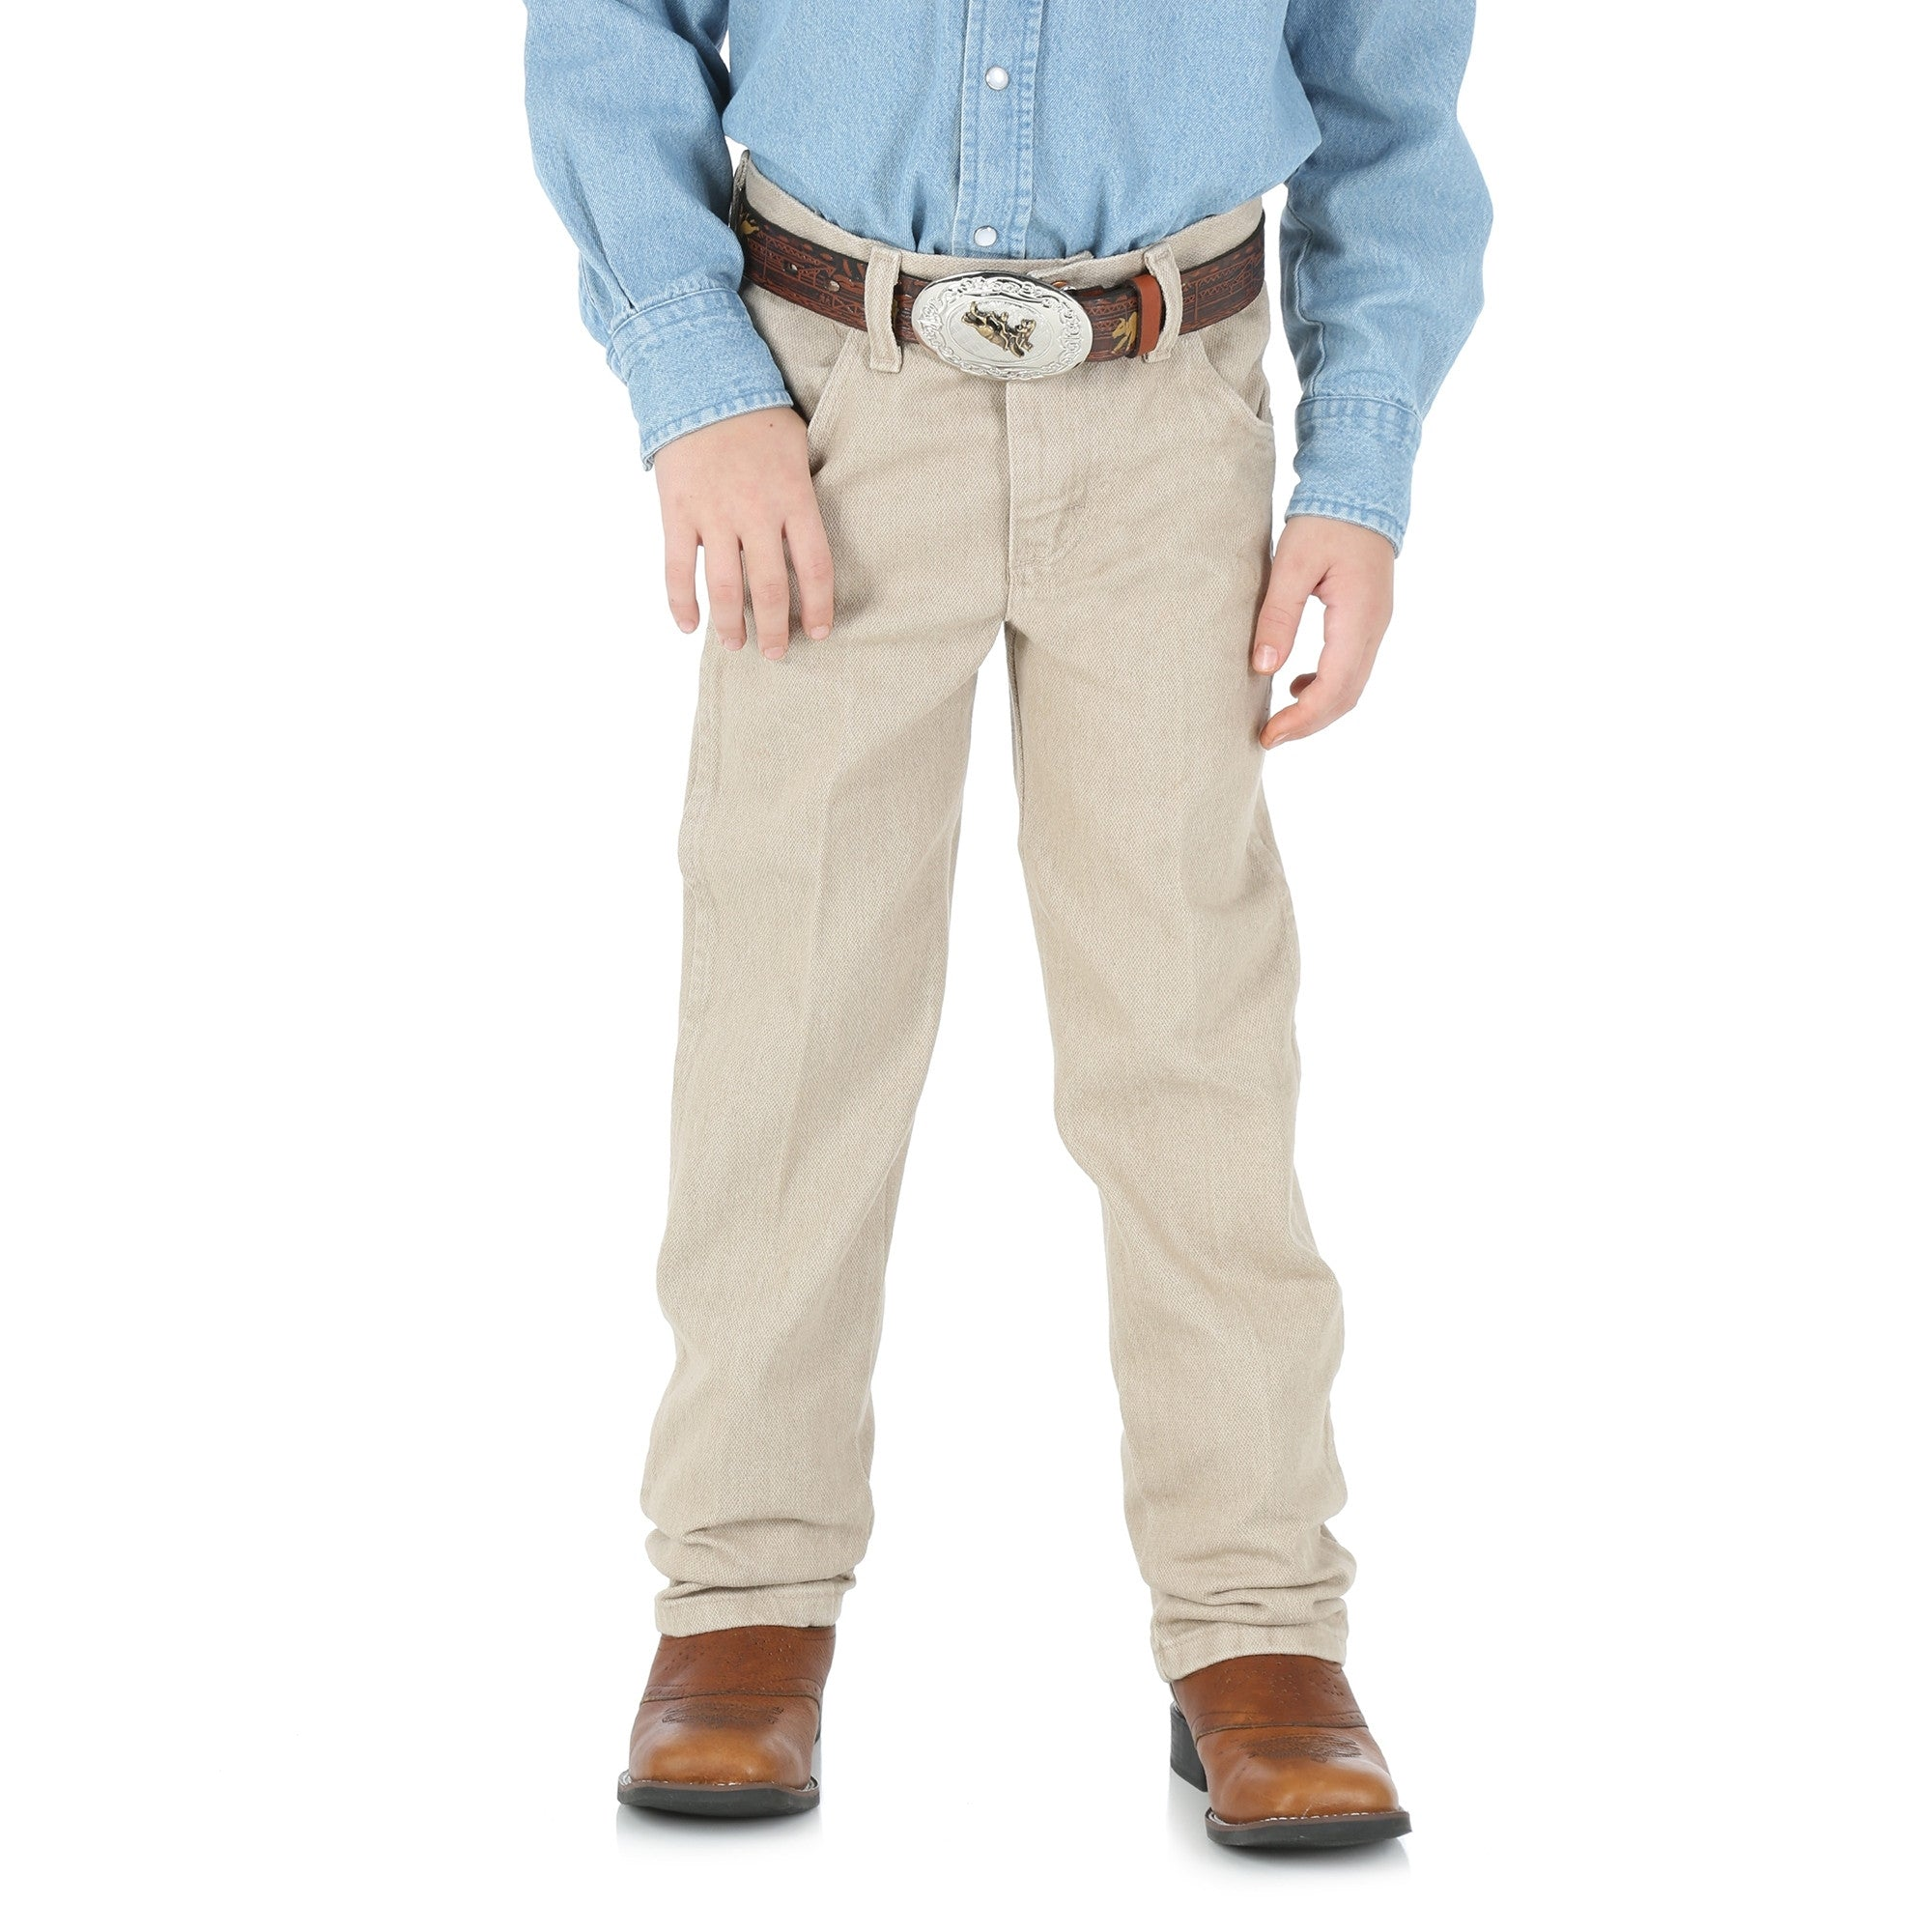 Boy's Wrangler Cowboy Cut Original Fit Jean #13MWBTN (8-16)